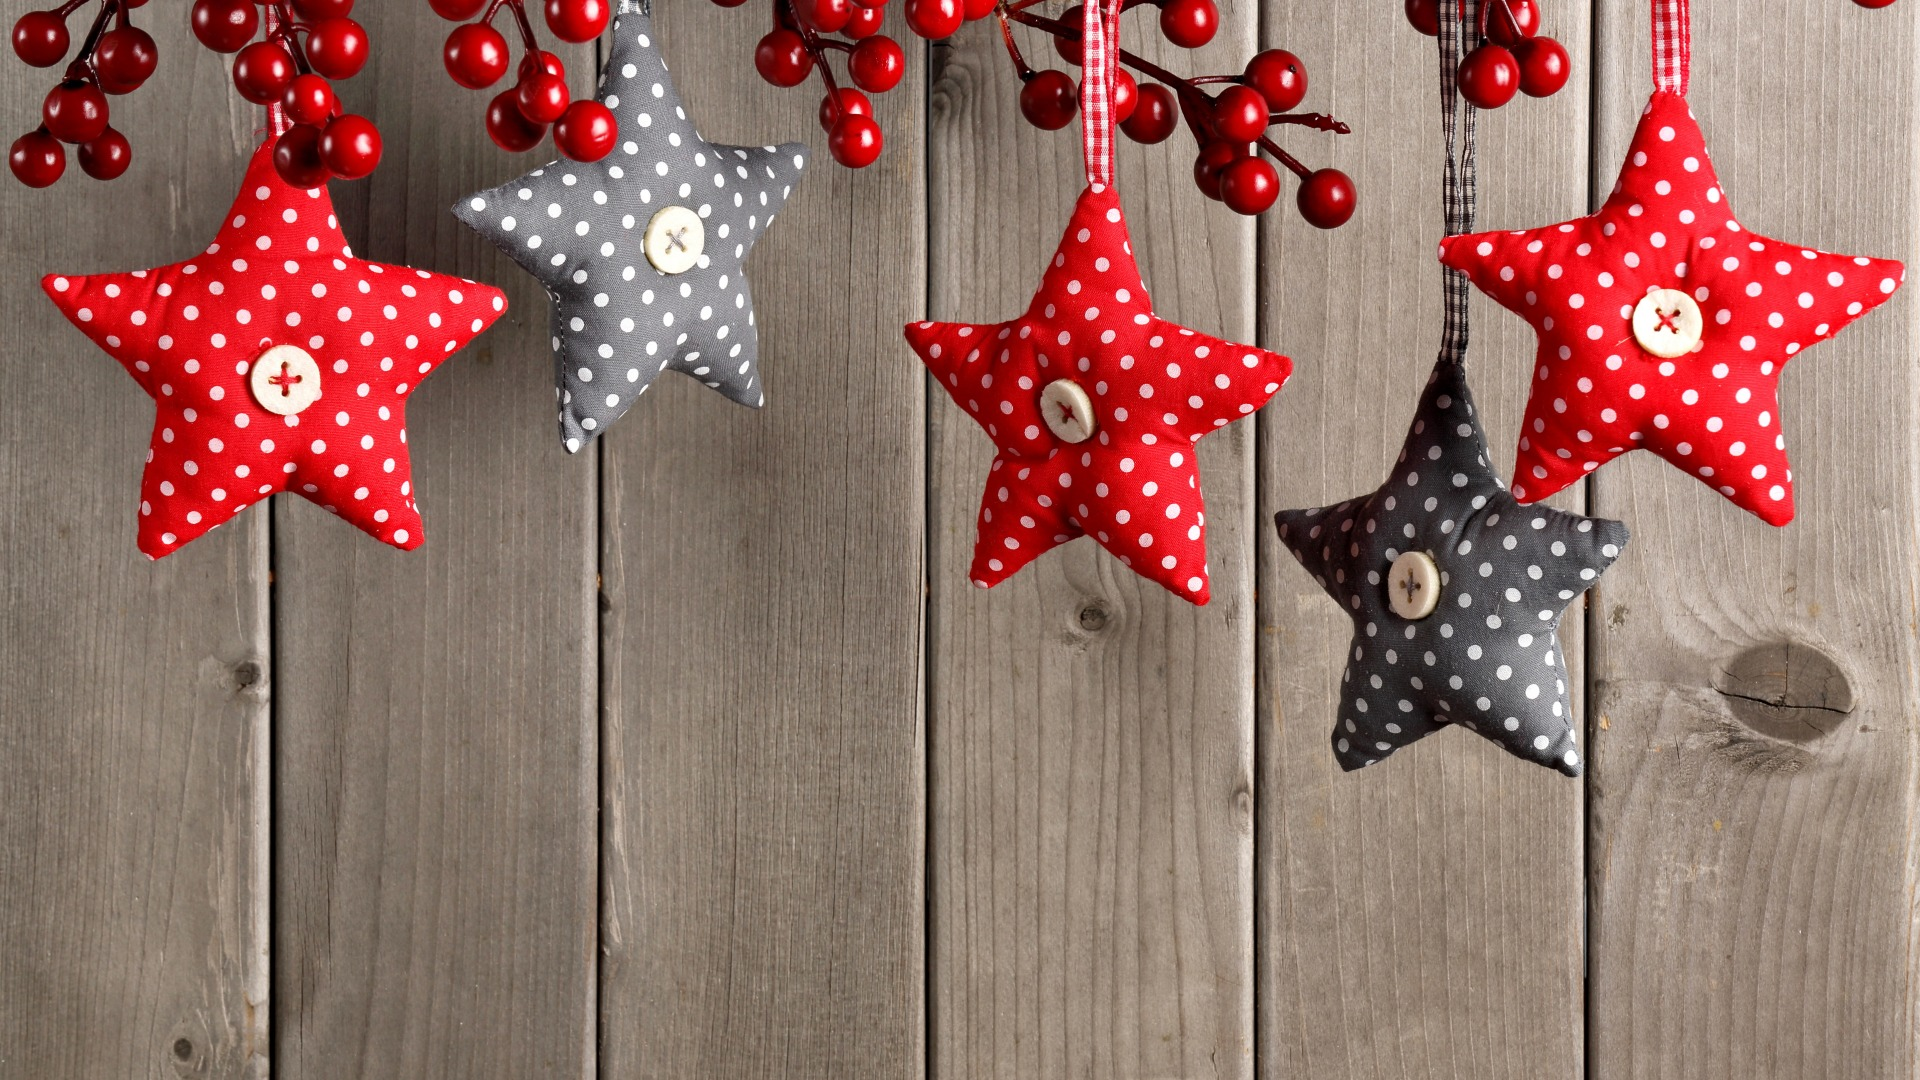 Download-stars-decoration-berries-New-Year-Christmas-Christmas-wood-decoration-Mer-wallpaper-wp3605129